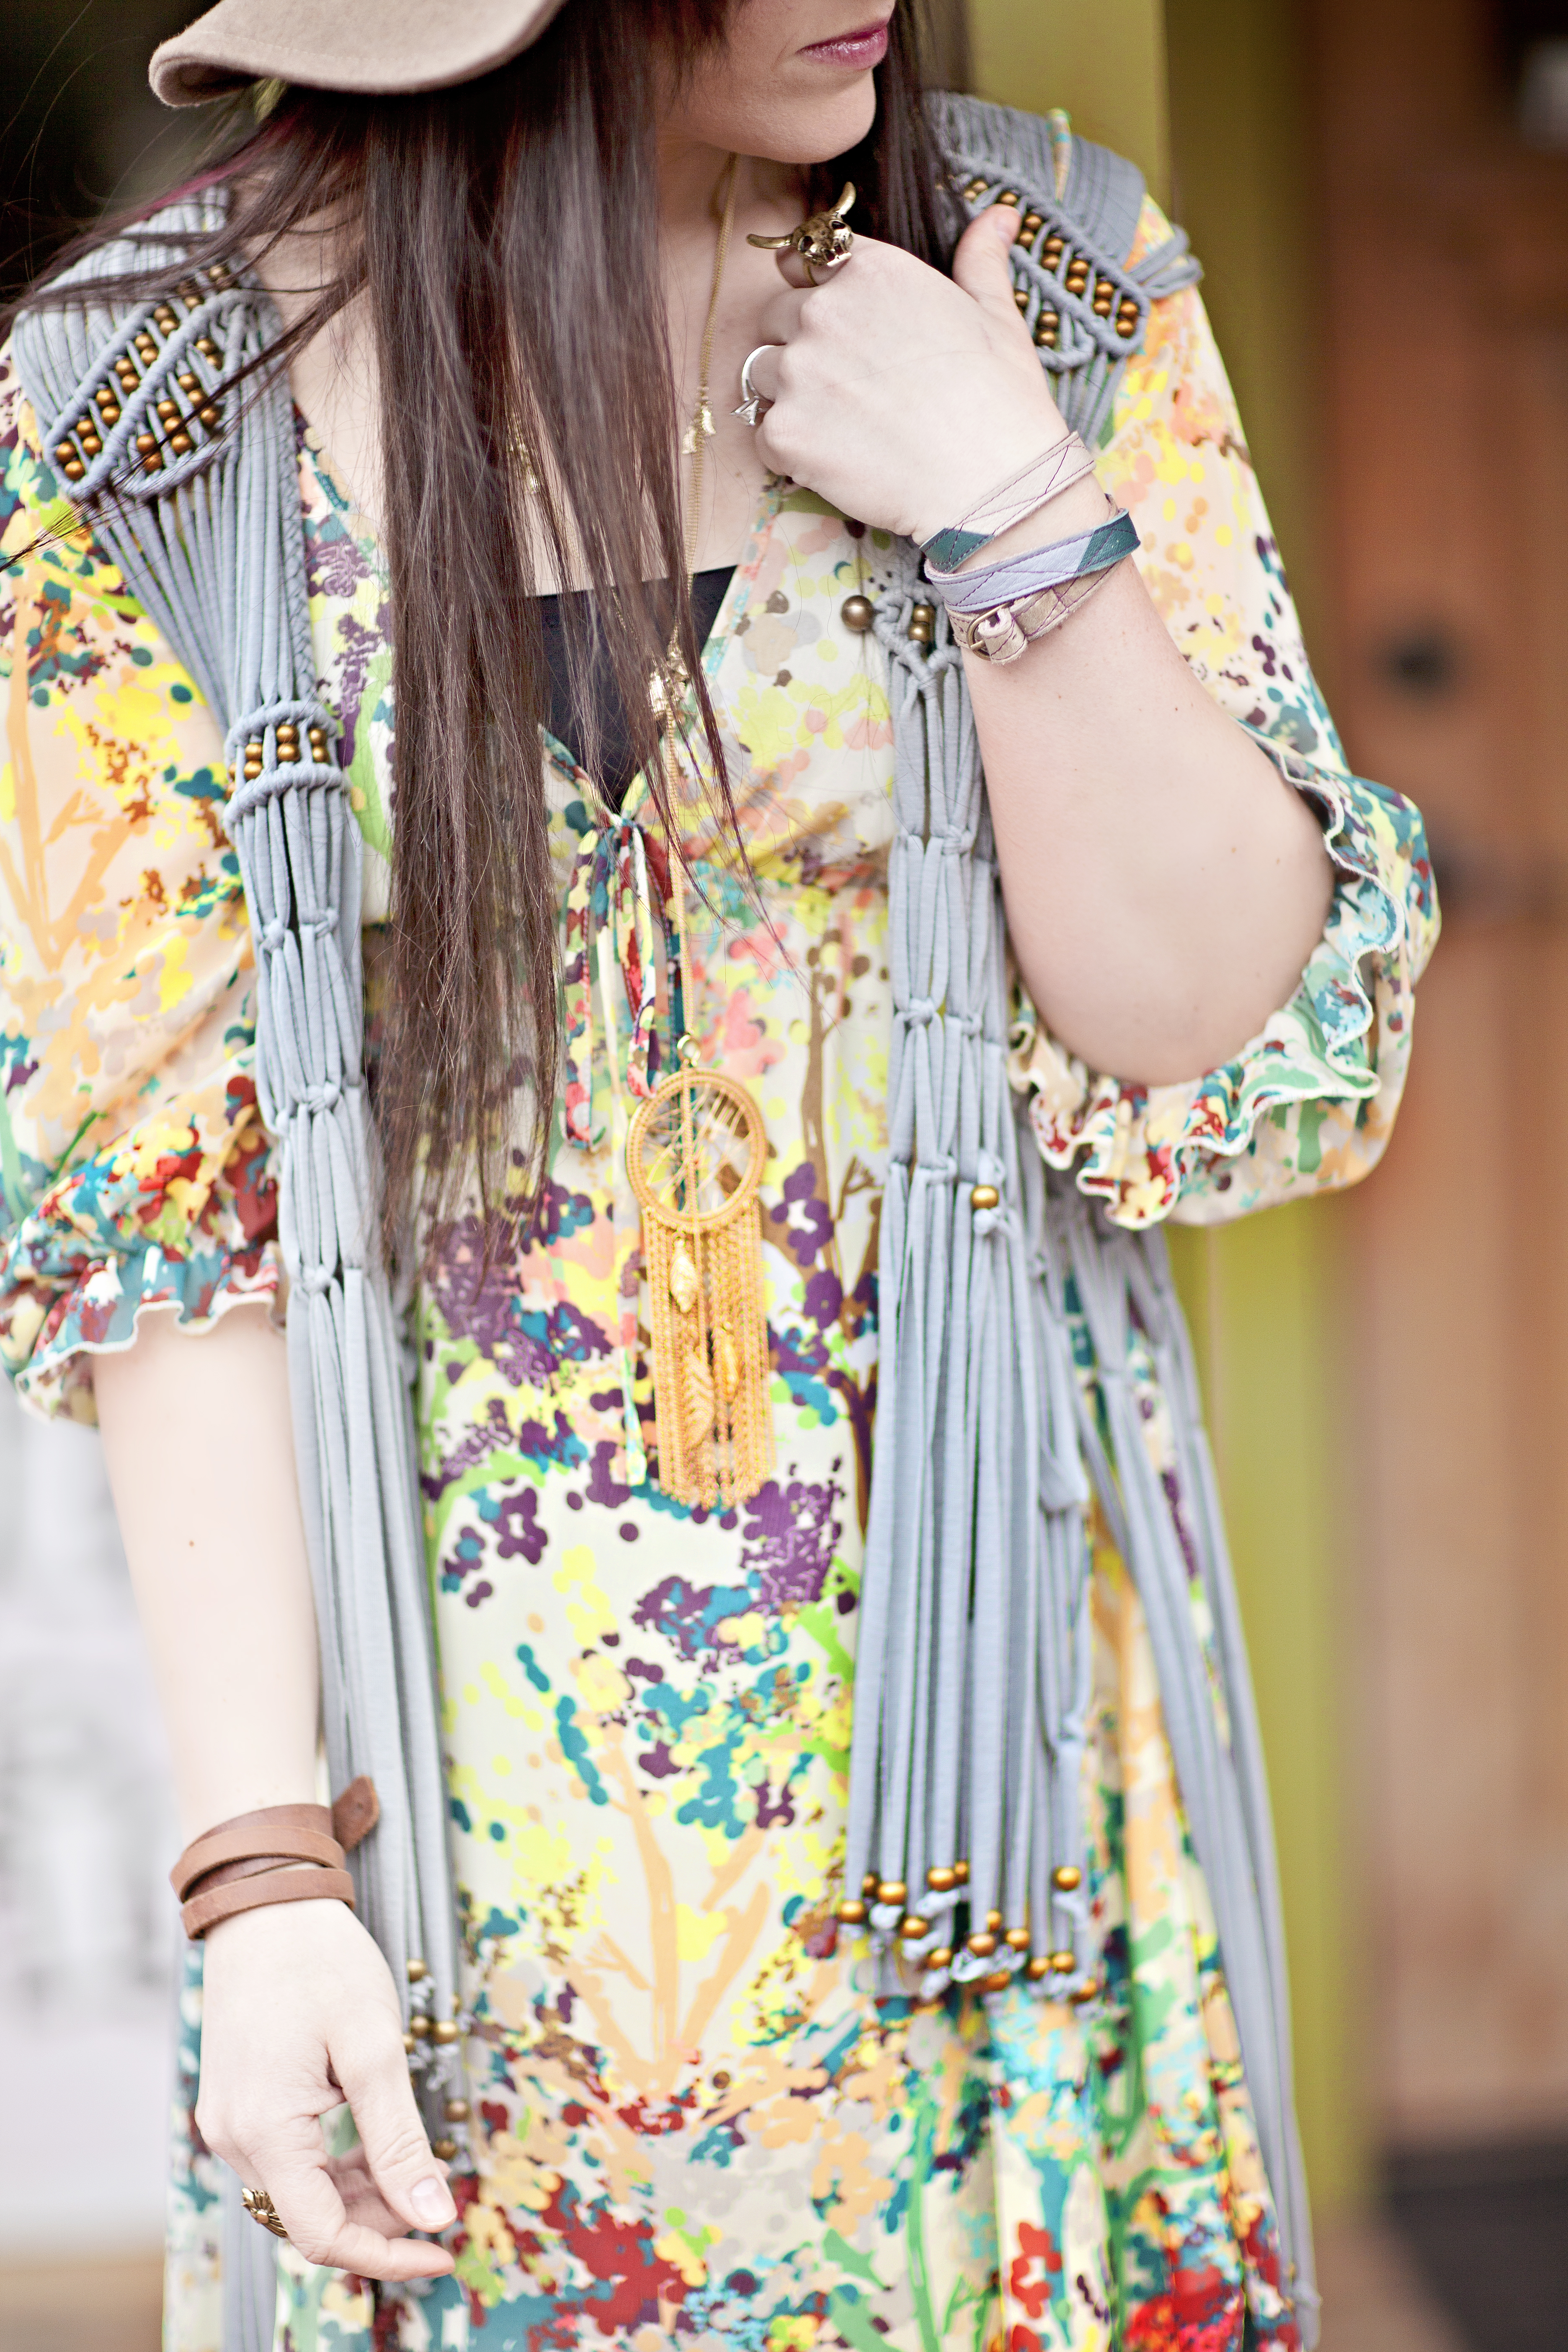 SUMMER GIVEAWAY with some of my favorite girls! {Fashion}